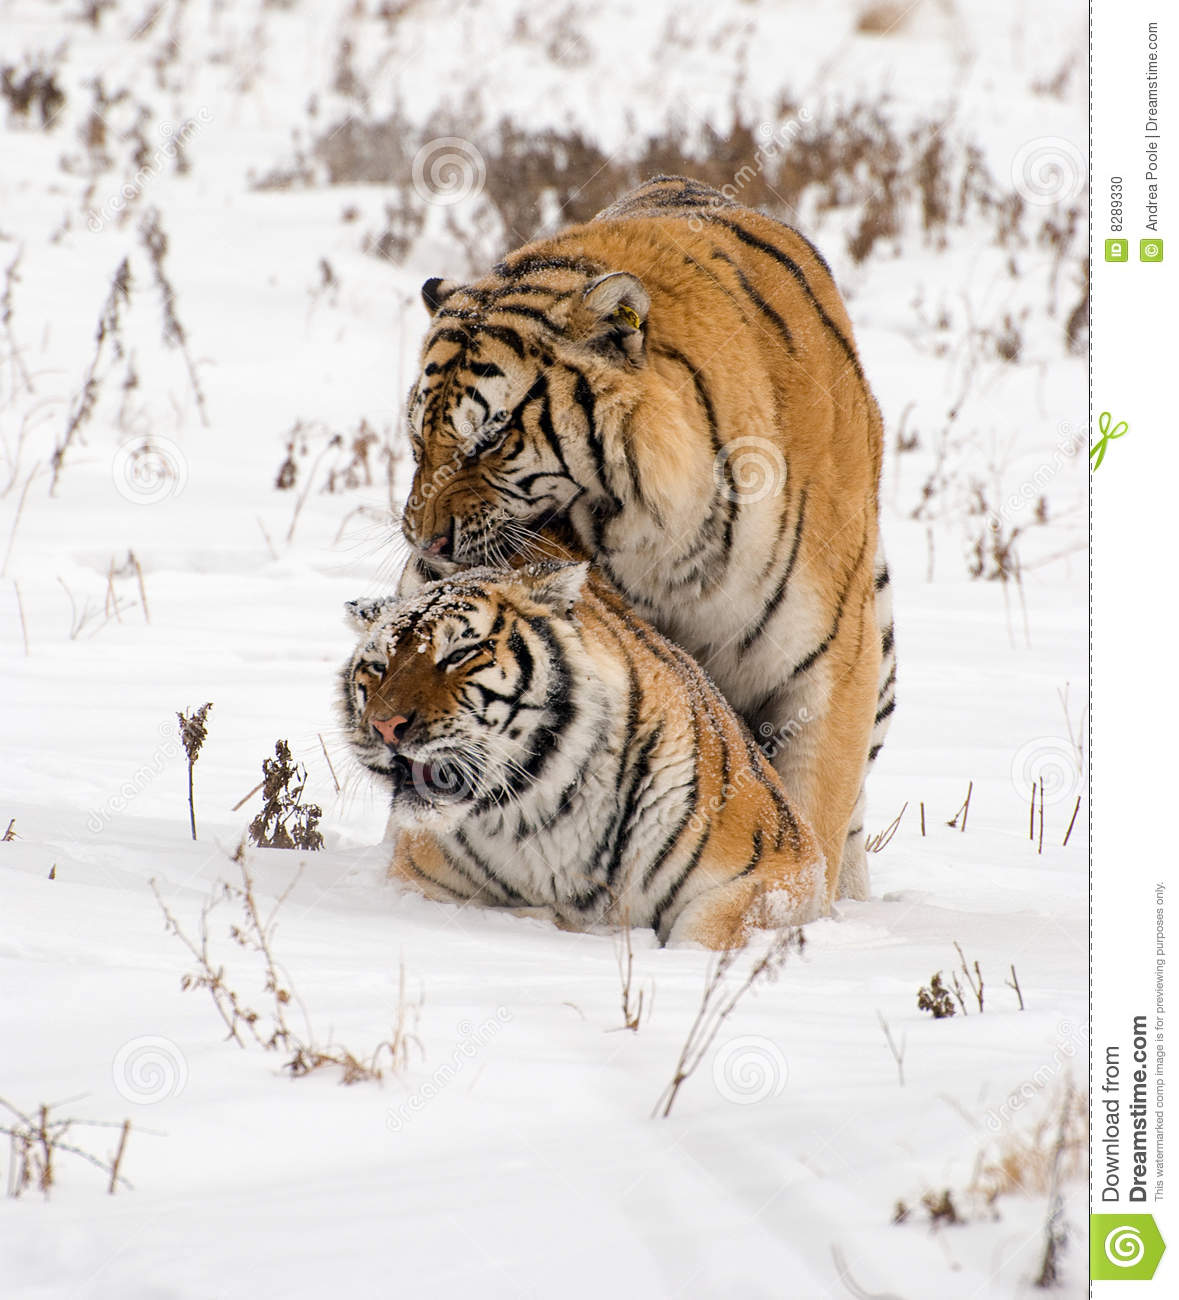 male and female siberian tiger mating in the winter snow in China.